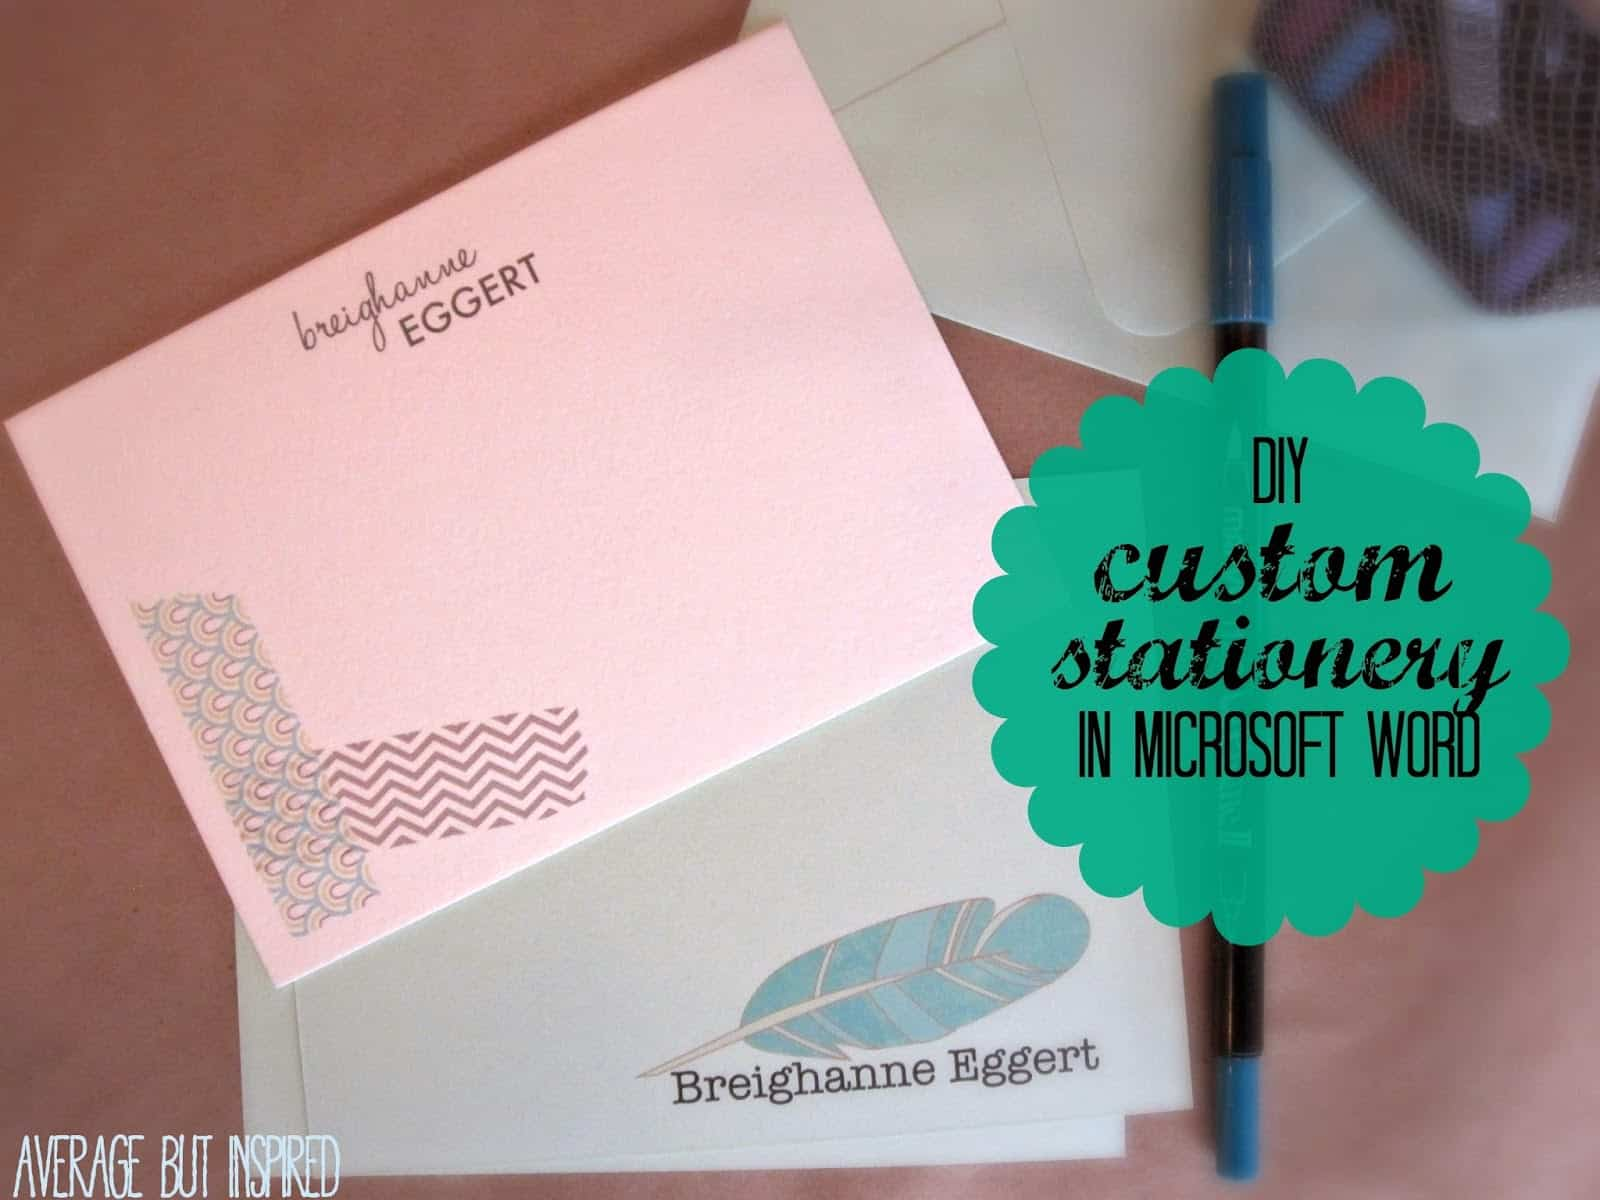 Simple custom stationery made in Microsoft Word